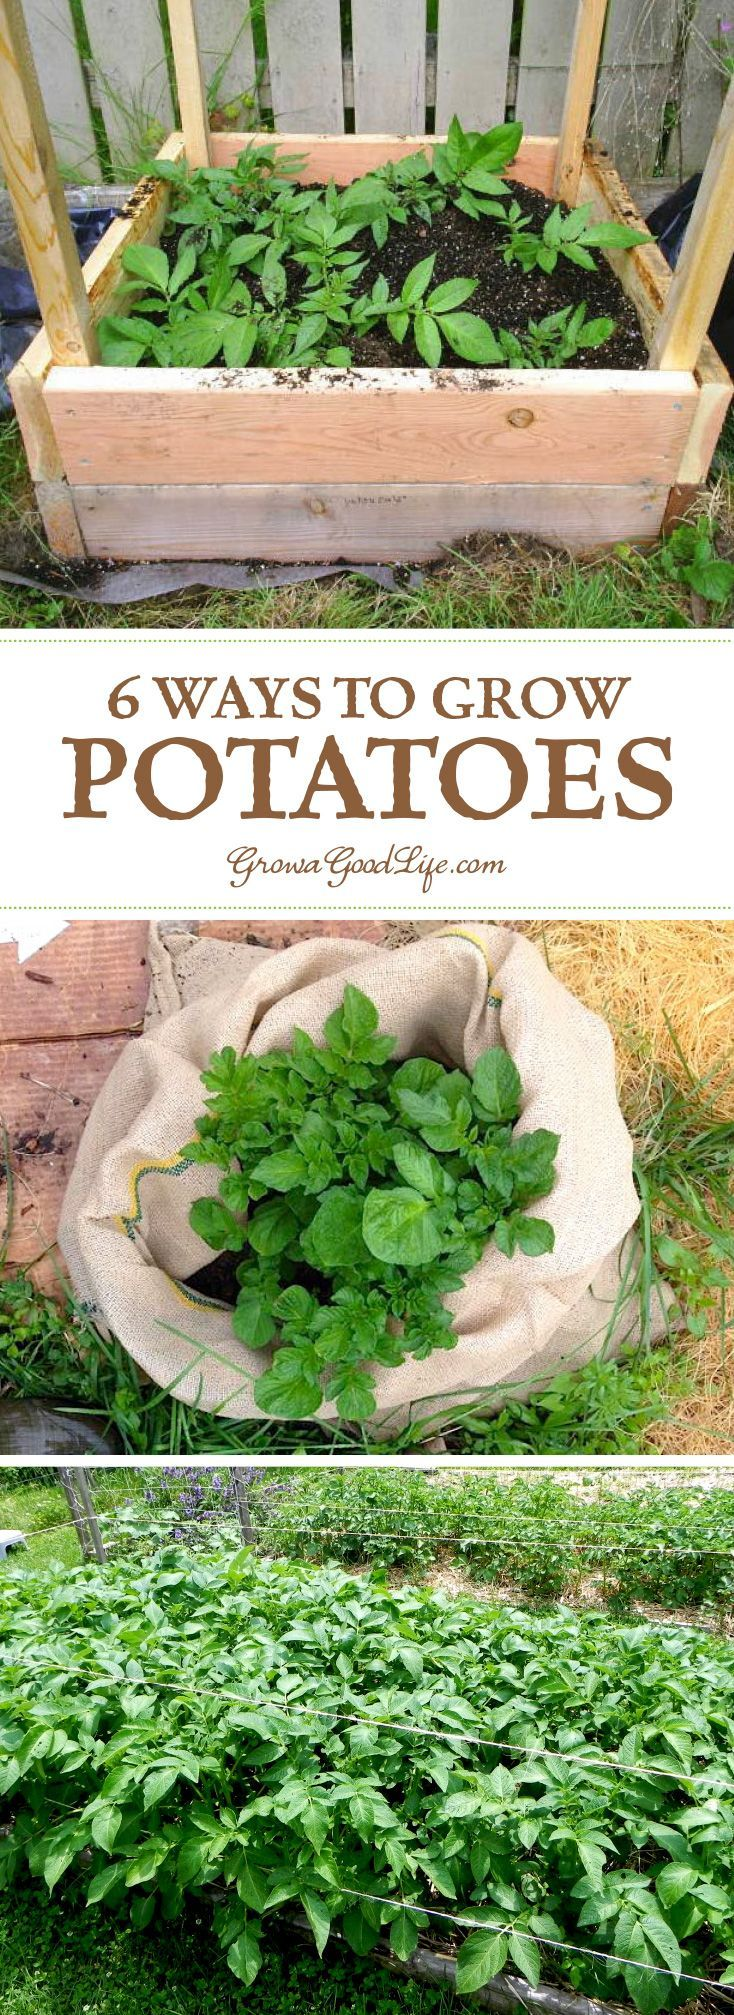 5953 best images about Vegetable Gardens Growing Food on